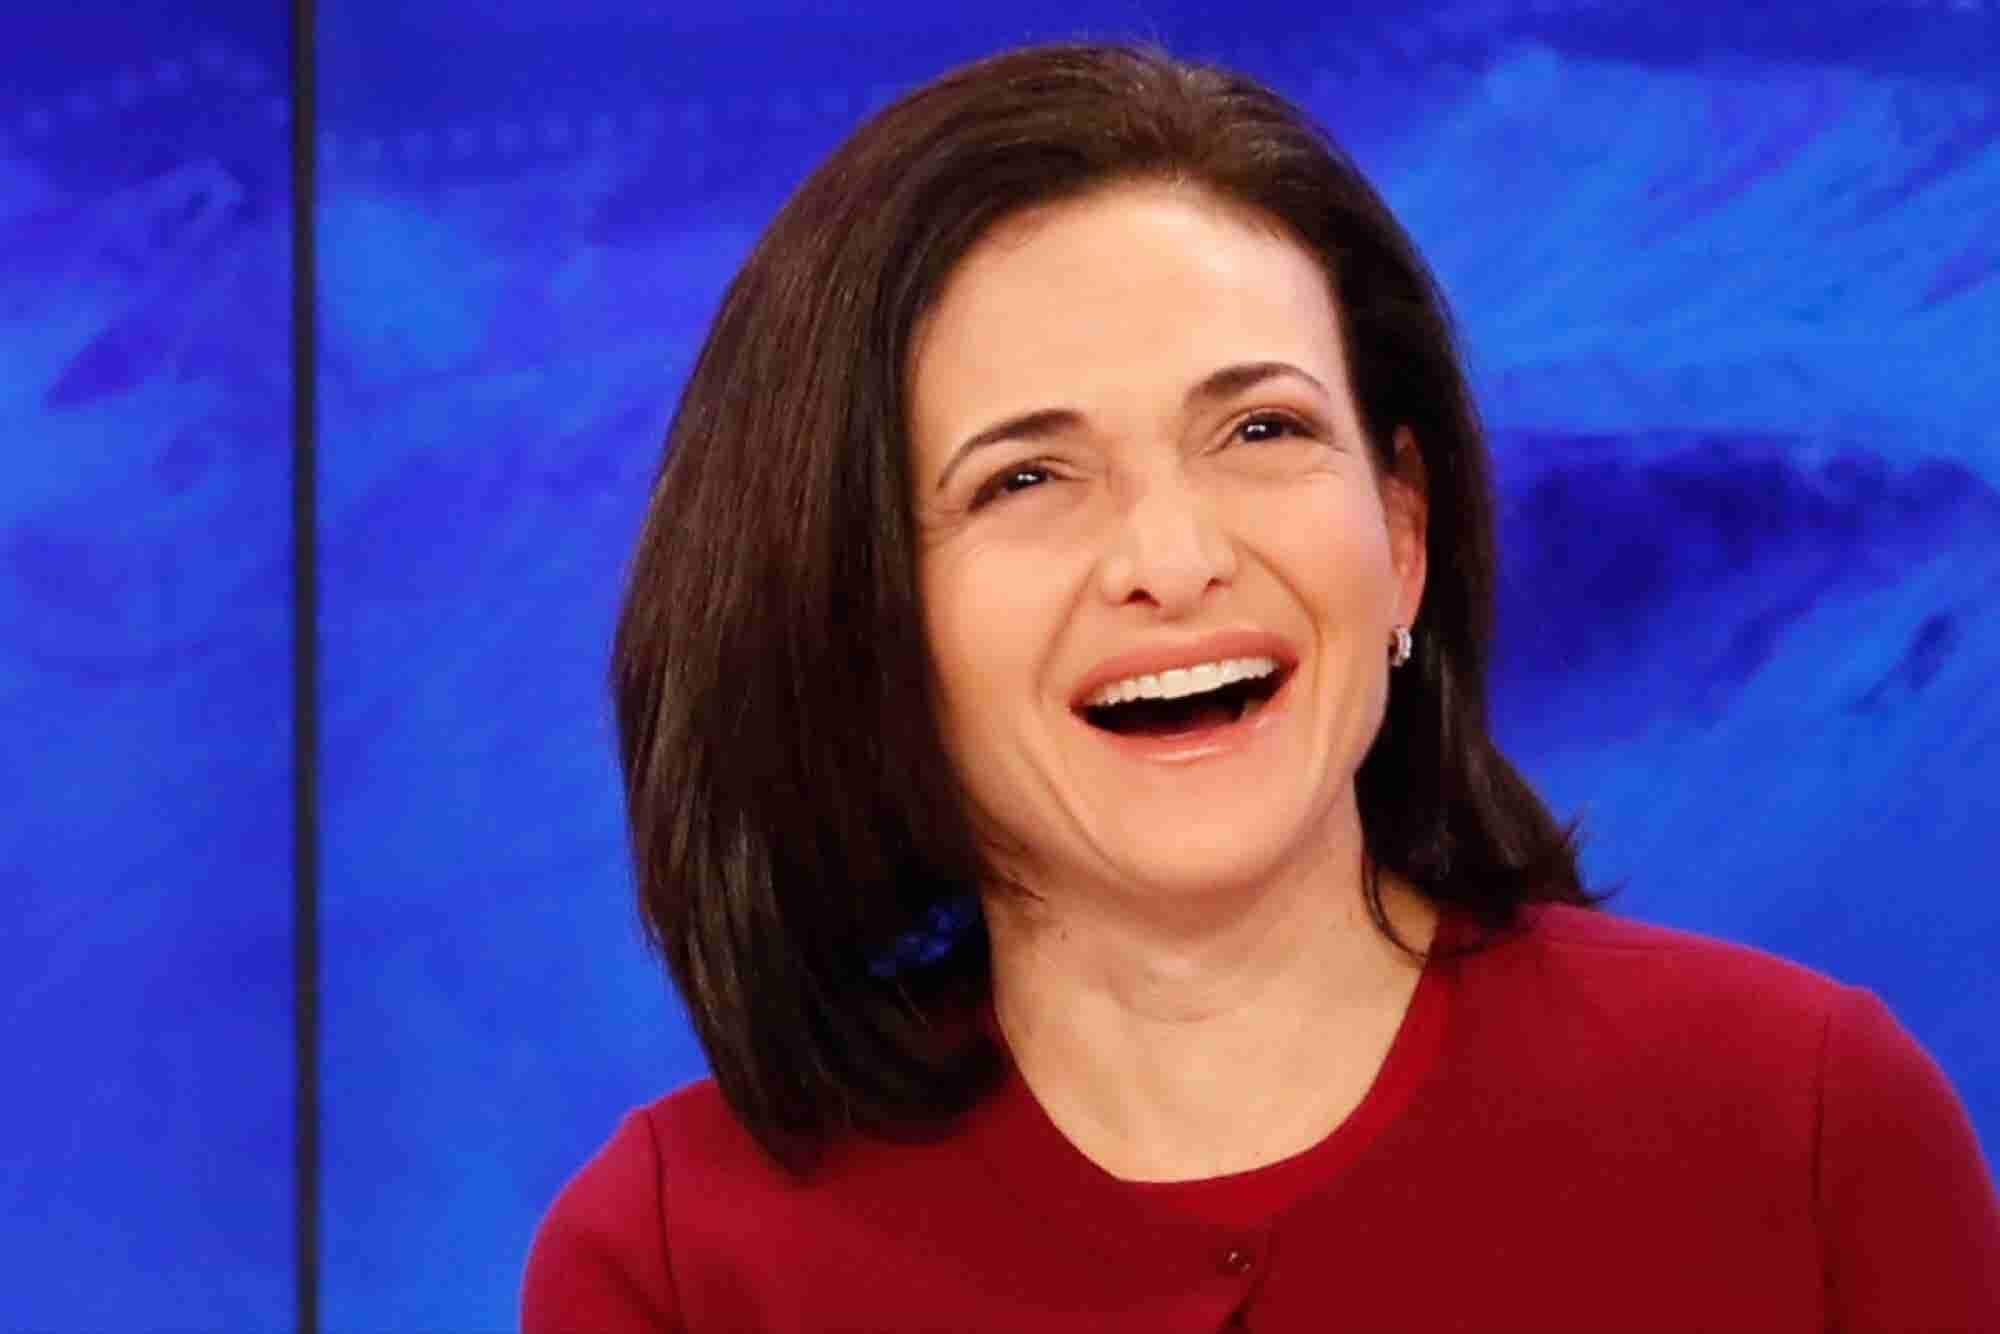 Here's How You Can Embody the Strength and Leadership of Sheryl Sandberg